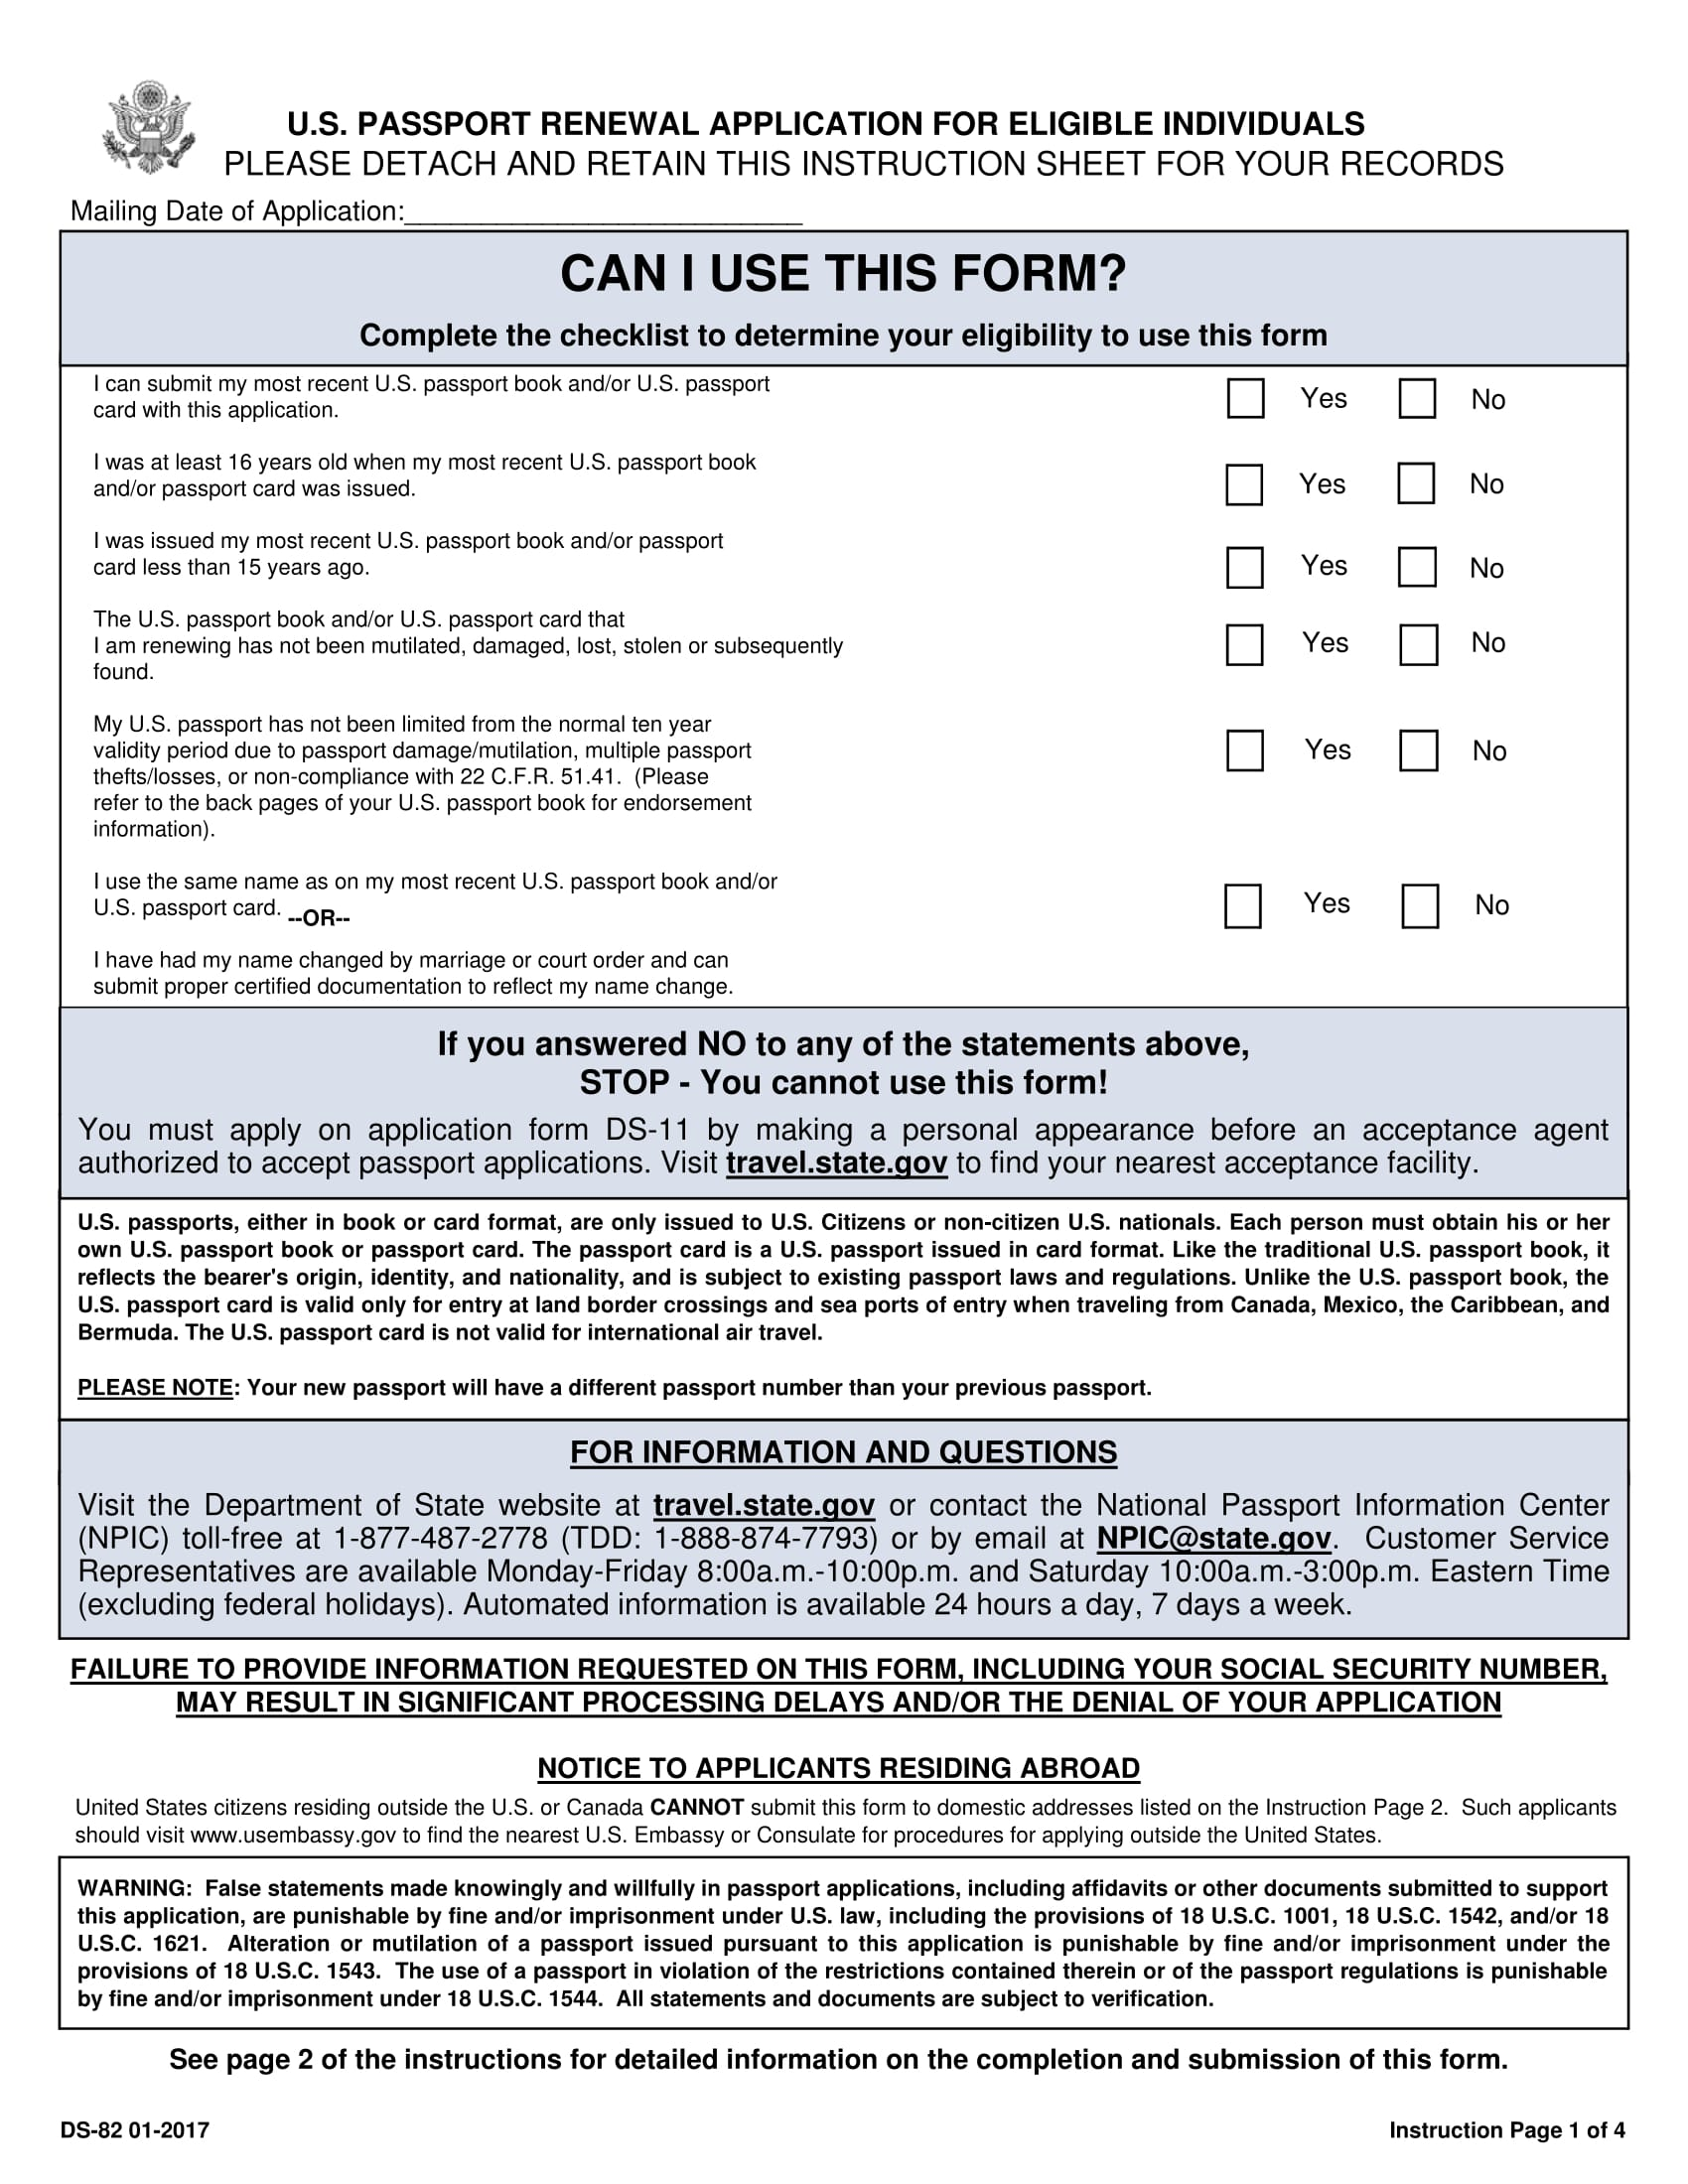 U.S. Passport Renewal Application For Eligible Individuals